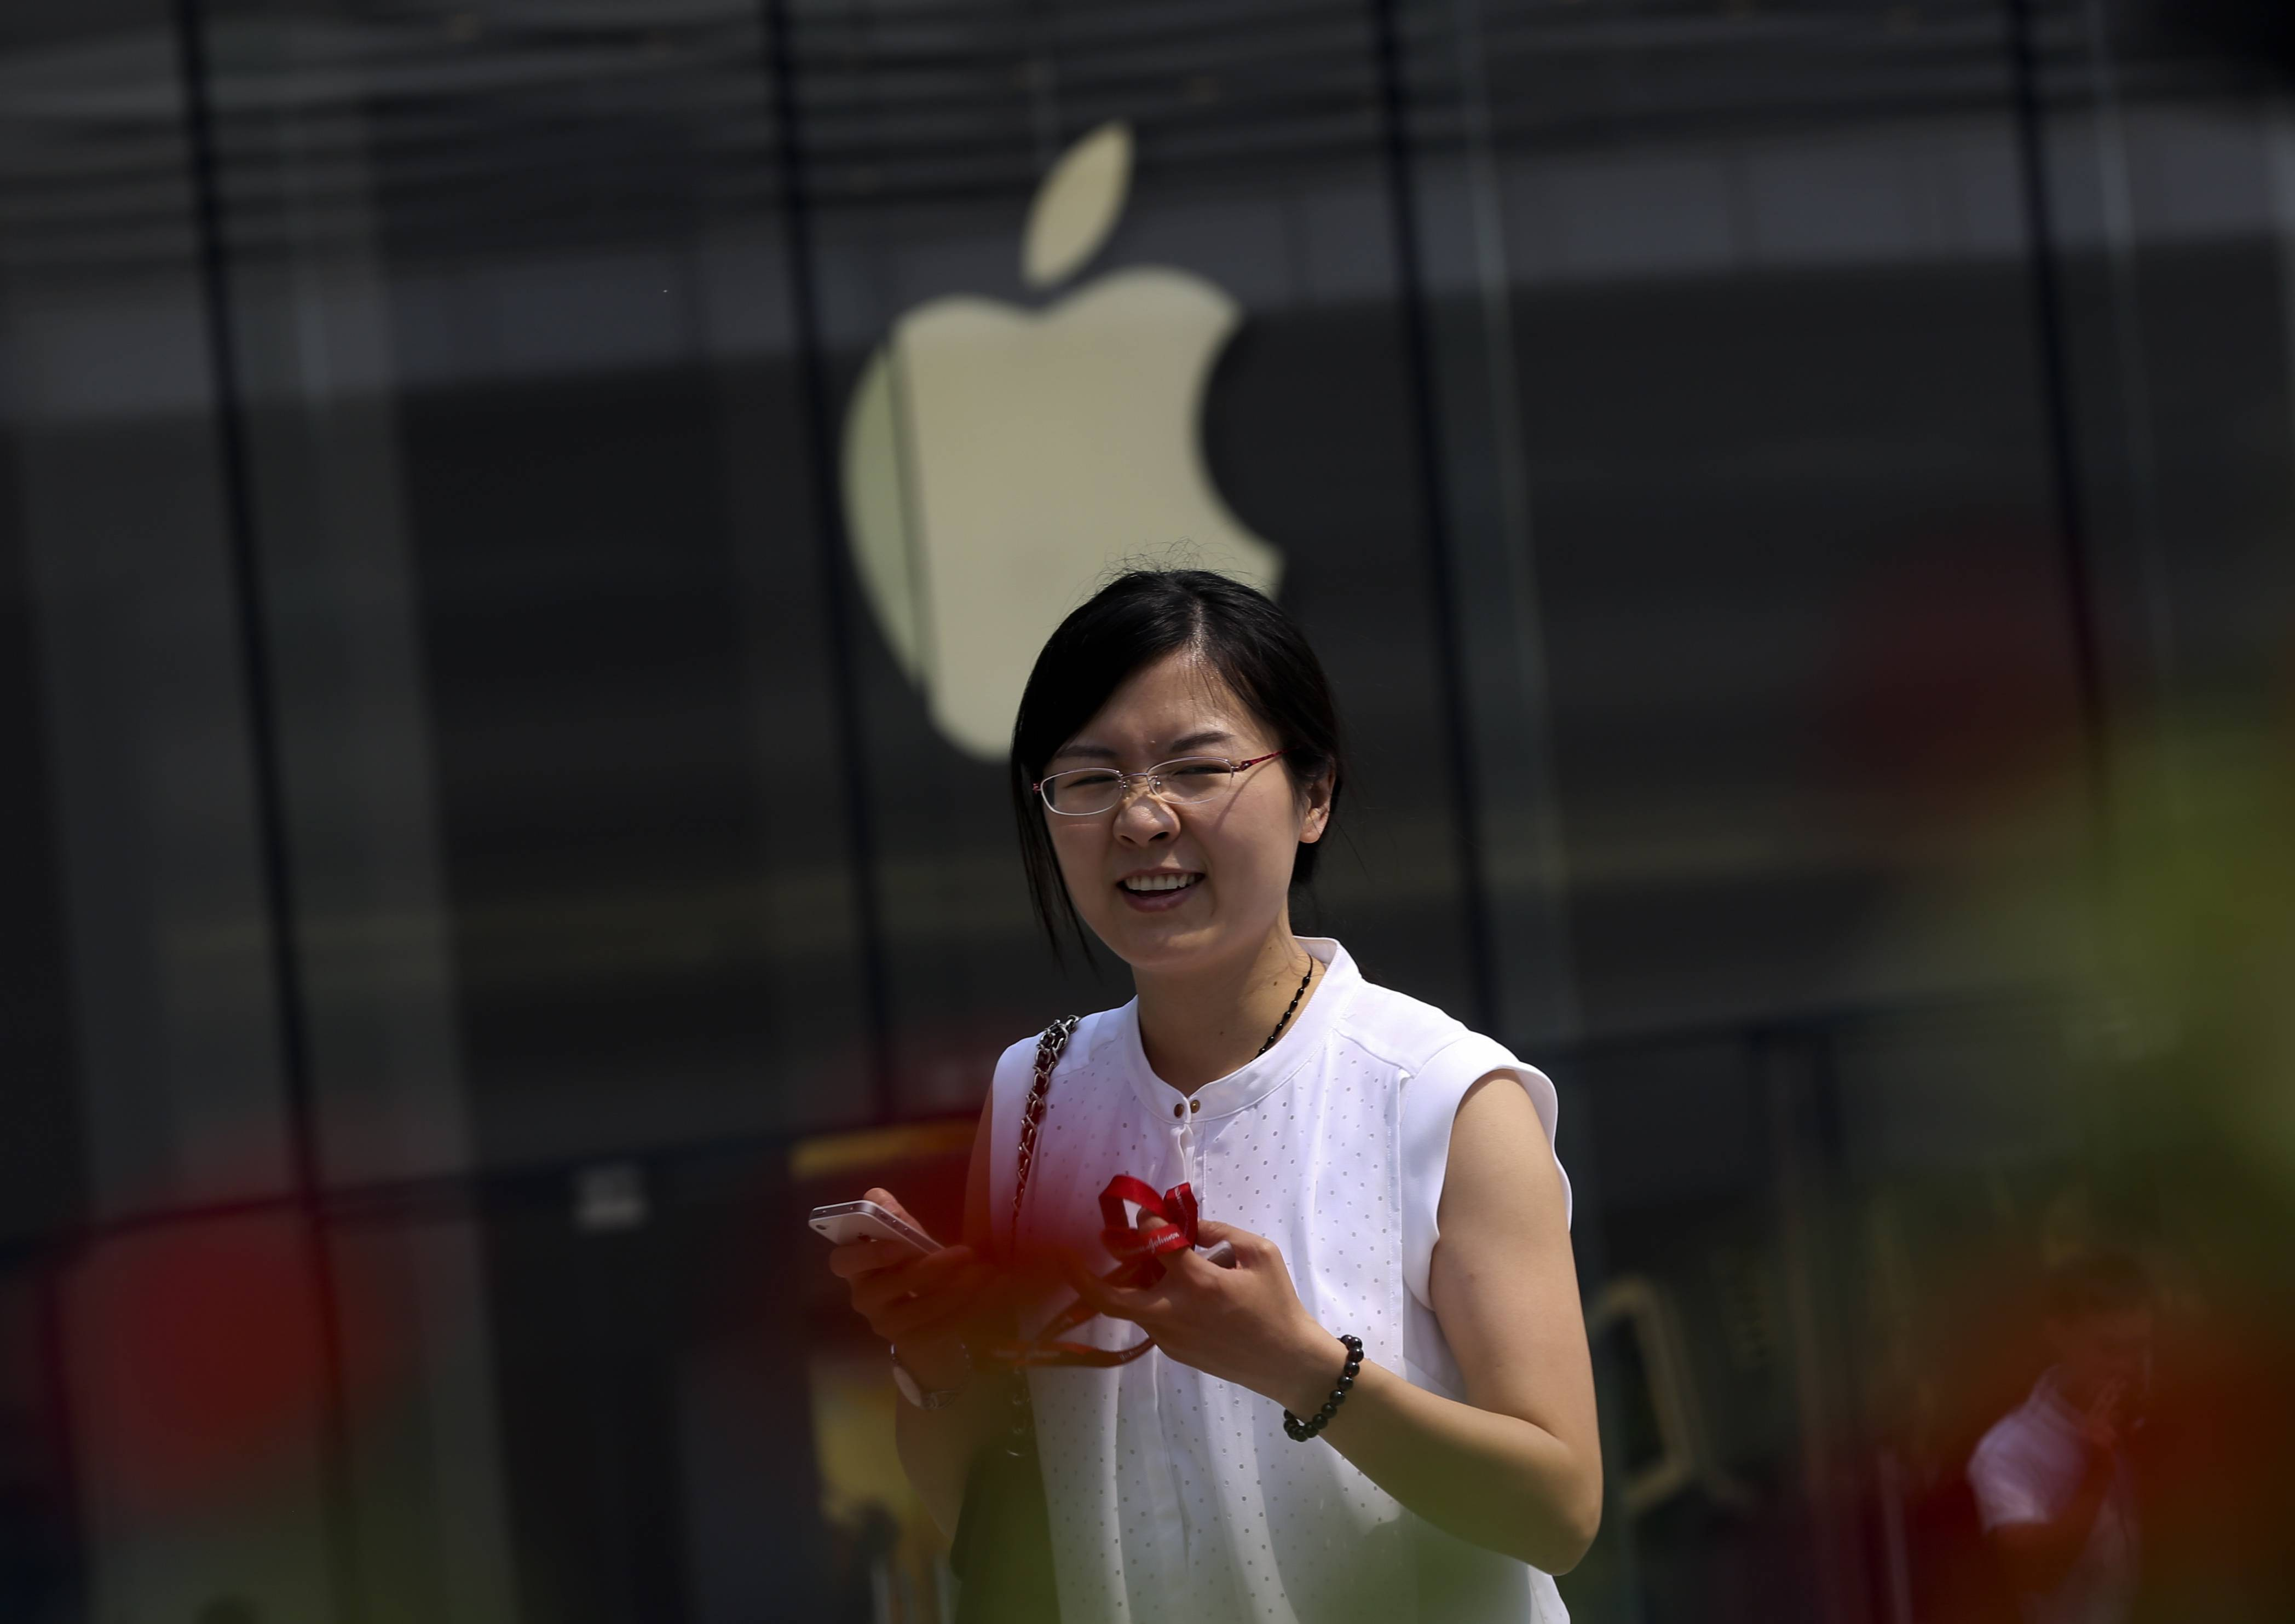 China's phone regulator said Tuesday it has approved Apple Inc.'s iPhone 6 for use on Chinese networks after the company promised never to allow other governments access to users' information. Apple said sales start on Oct. 17.